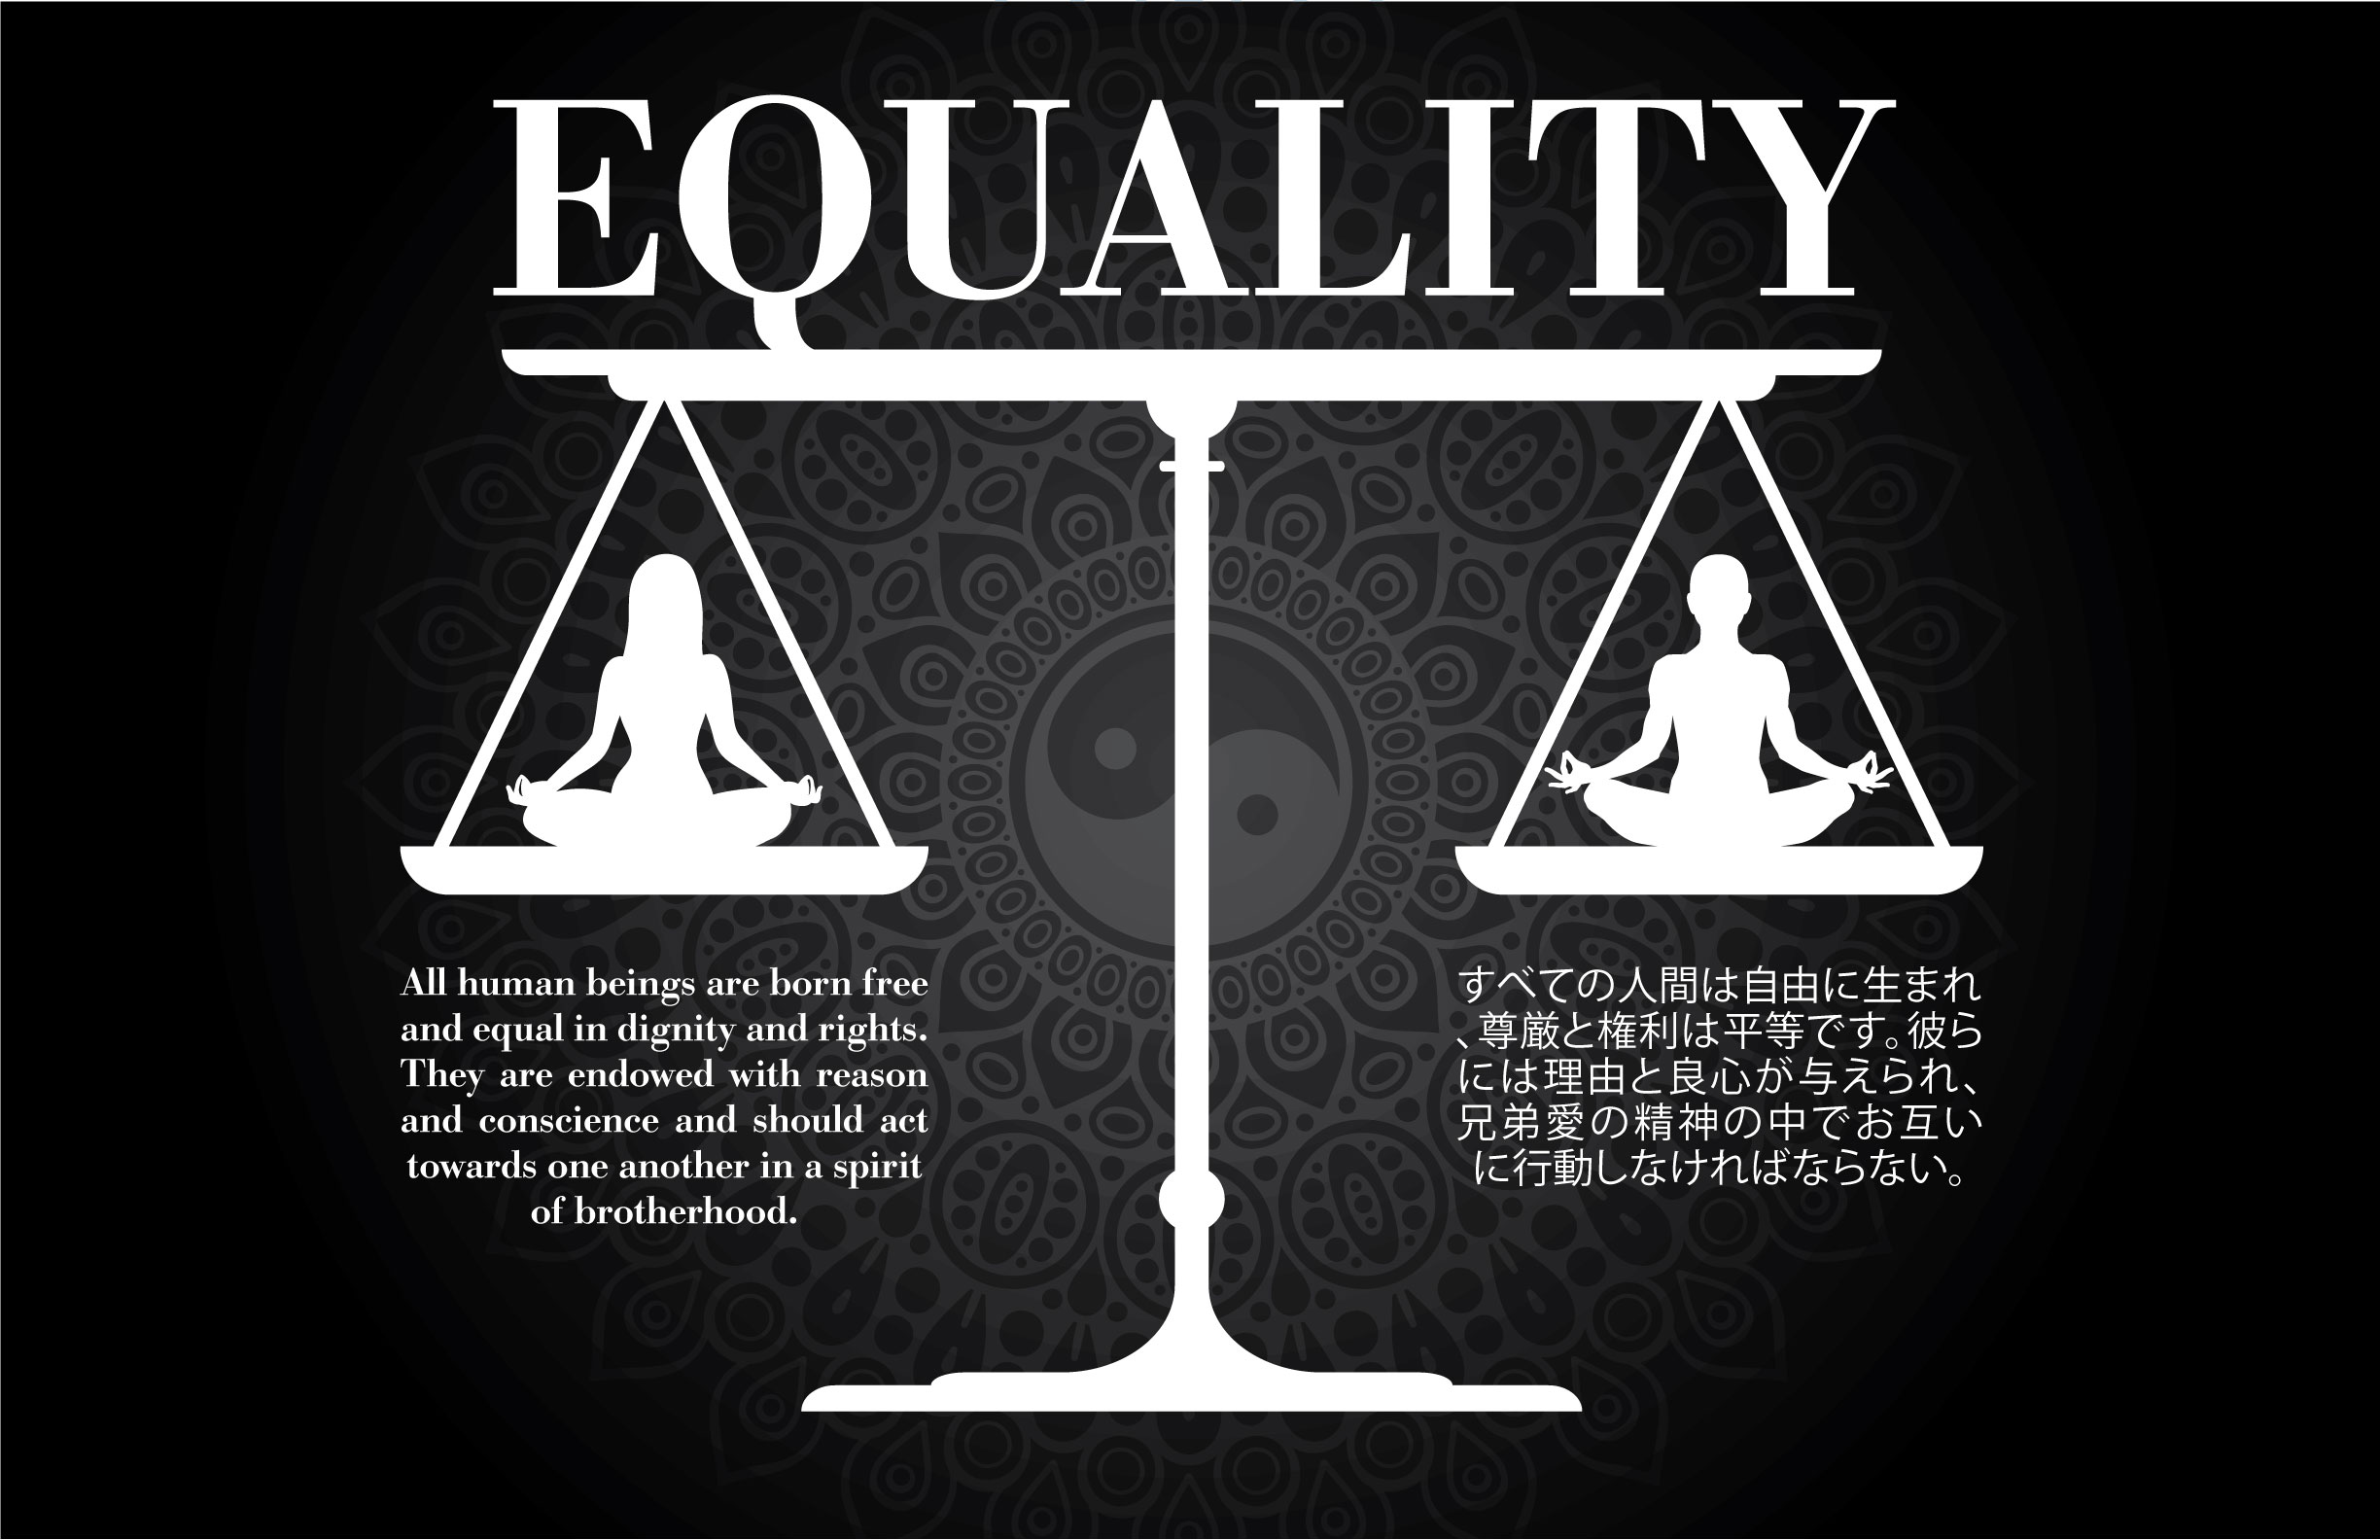 Equality-(Intercultural-Poster).jpg